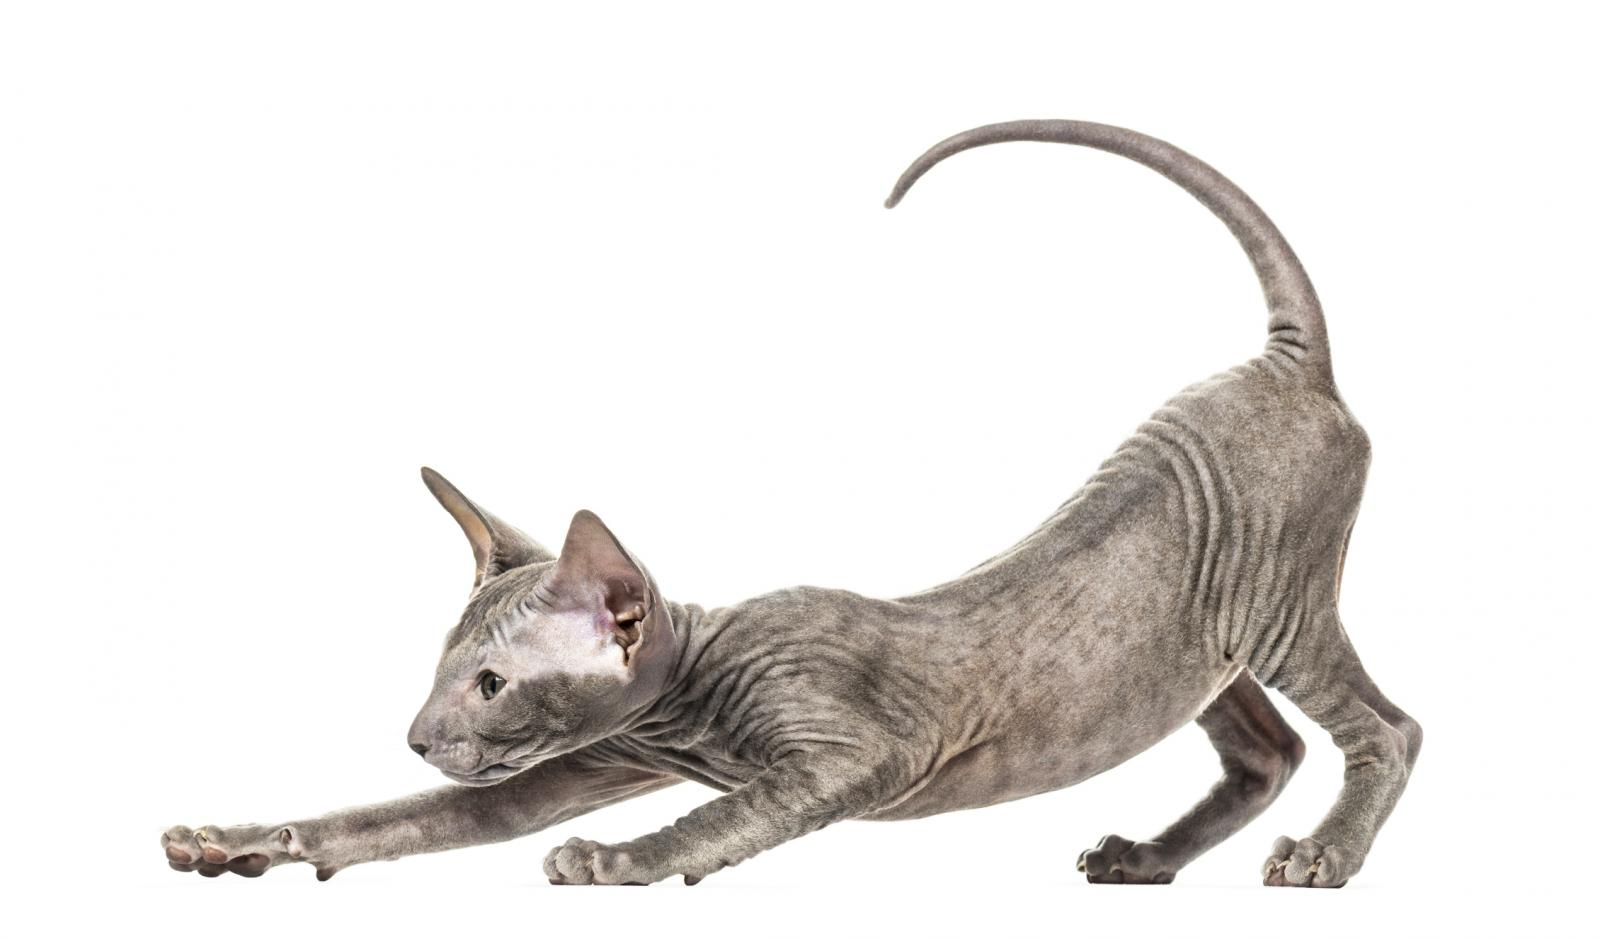 Peterbald kitten stretching in a funny position